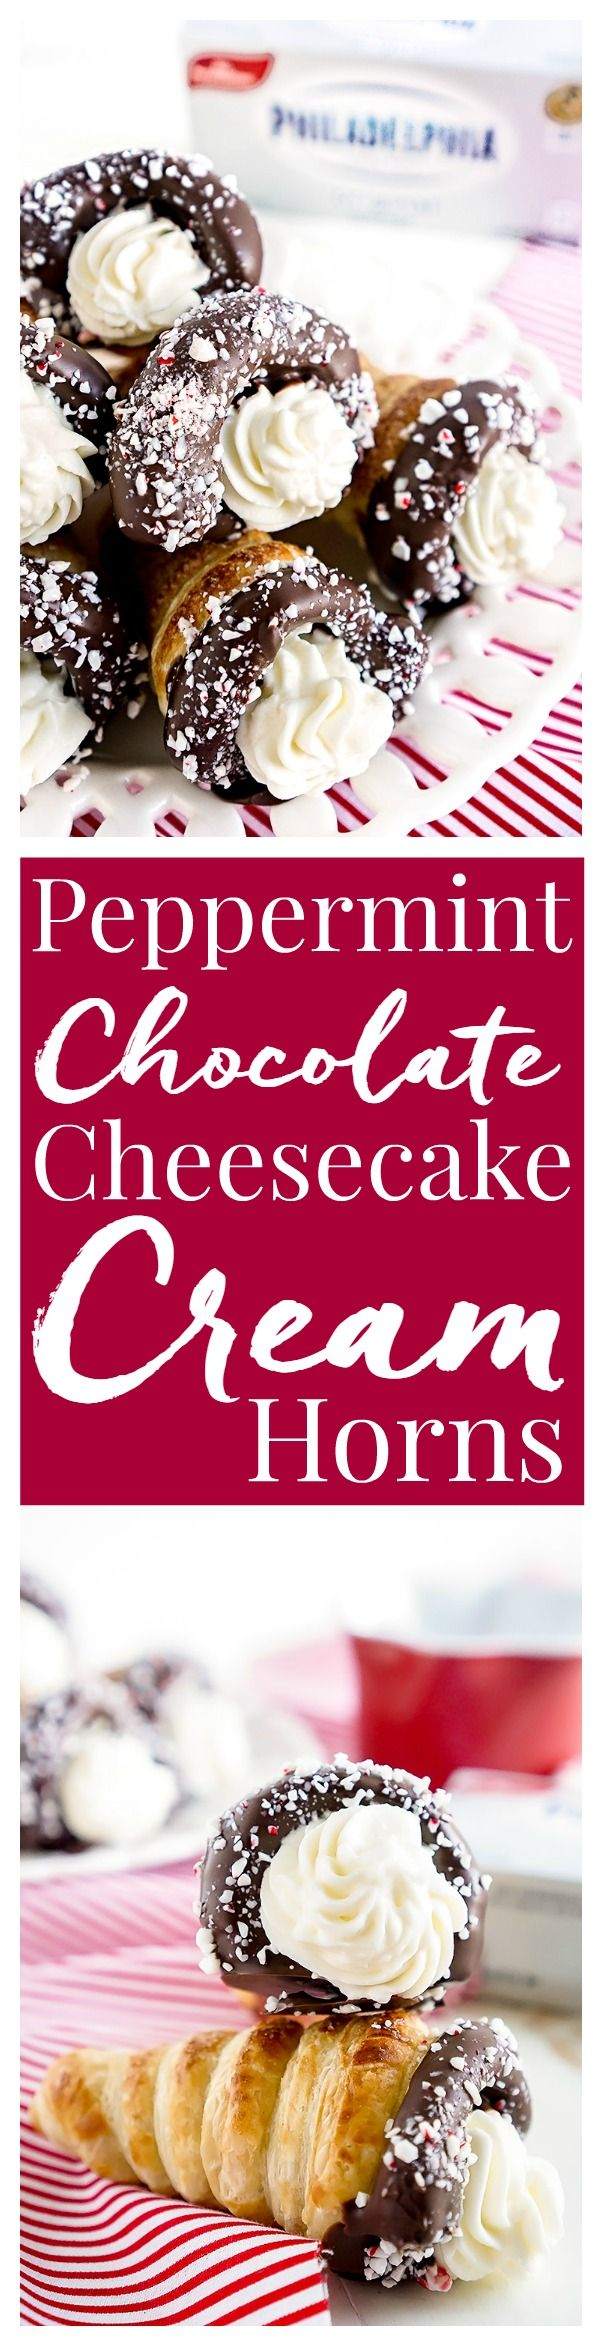 These Chocolate Peppermint Cheesecake Cream Horns are a simple dessert with a flaky pastry, chocolate, peppermint, and a peppermint cream cheese filling. #OneAndOnlyPhilly #HolidaysAreMadeWith #ad @spreadphilly #creamhorns